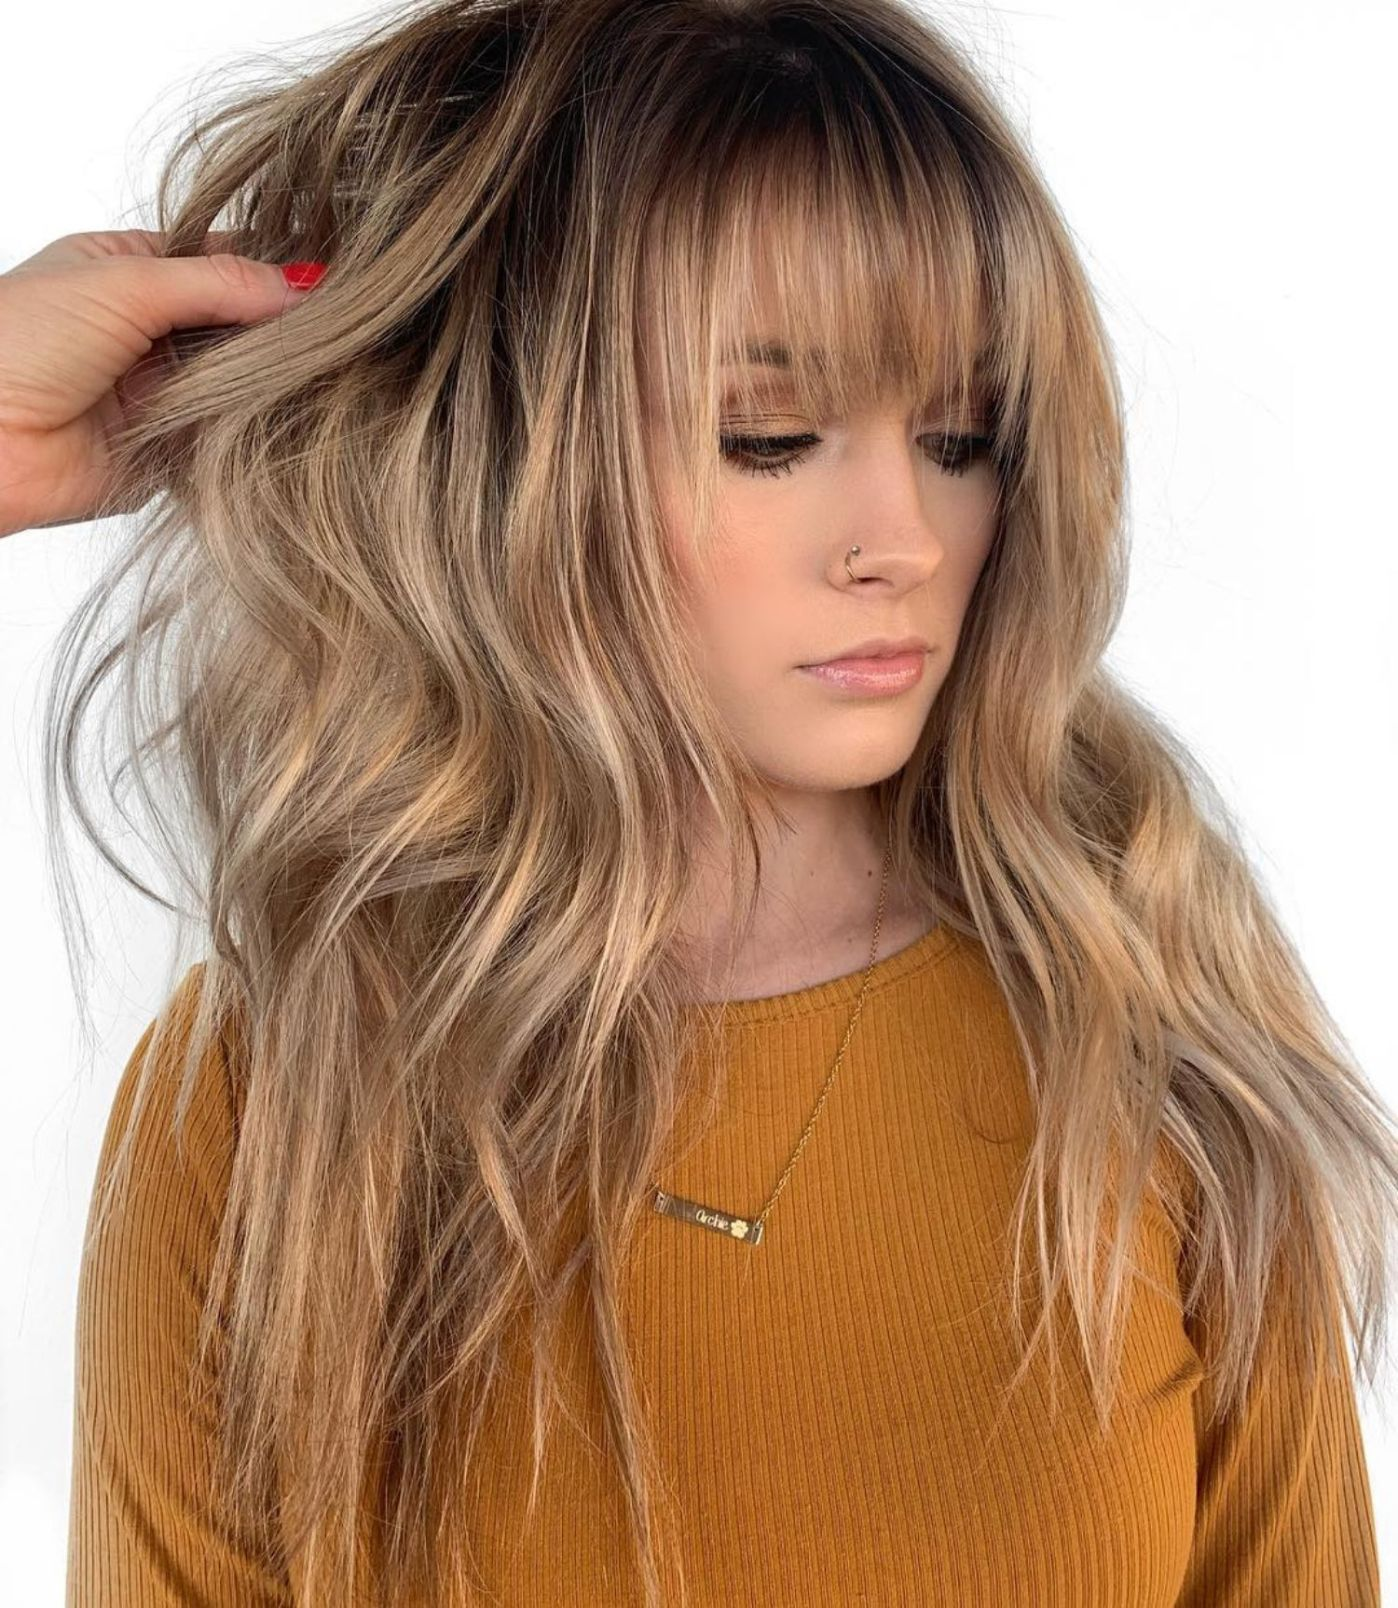 50 Cute And Effortless Long Layered Haircuts With Bangs Long Hair With Bangs Layered Haircuts With Bangs Long Hair Styles